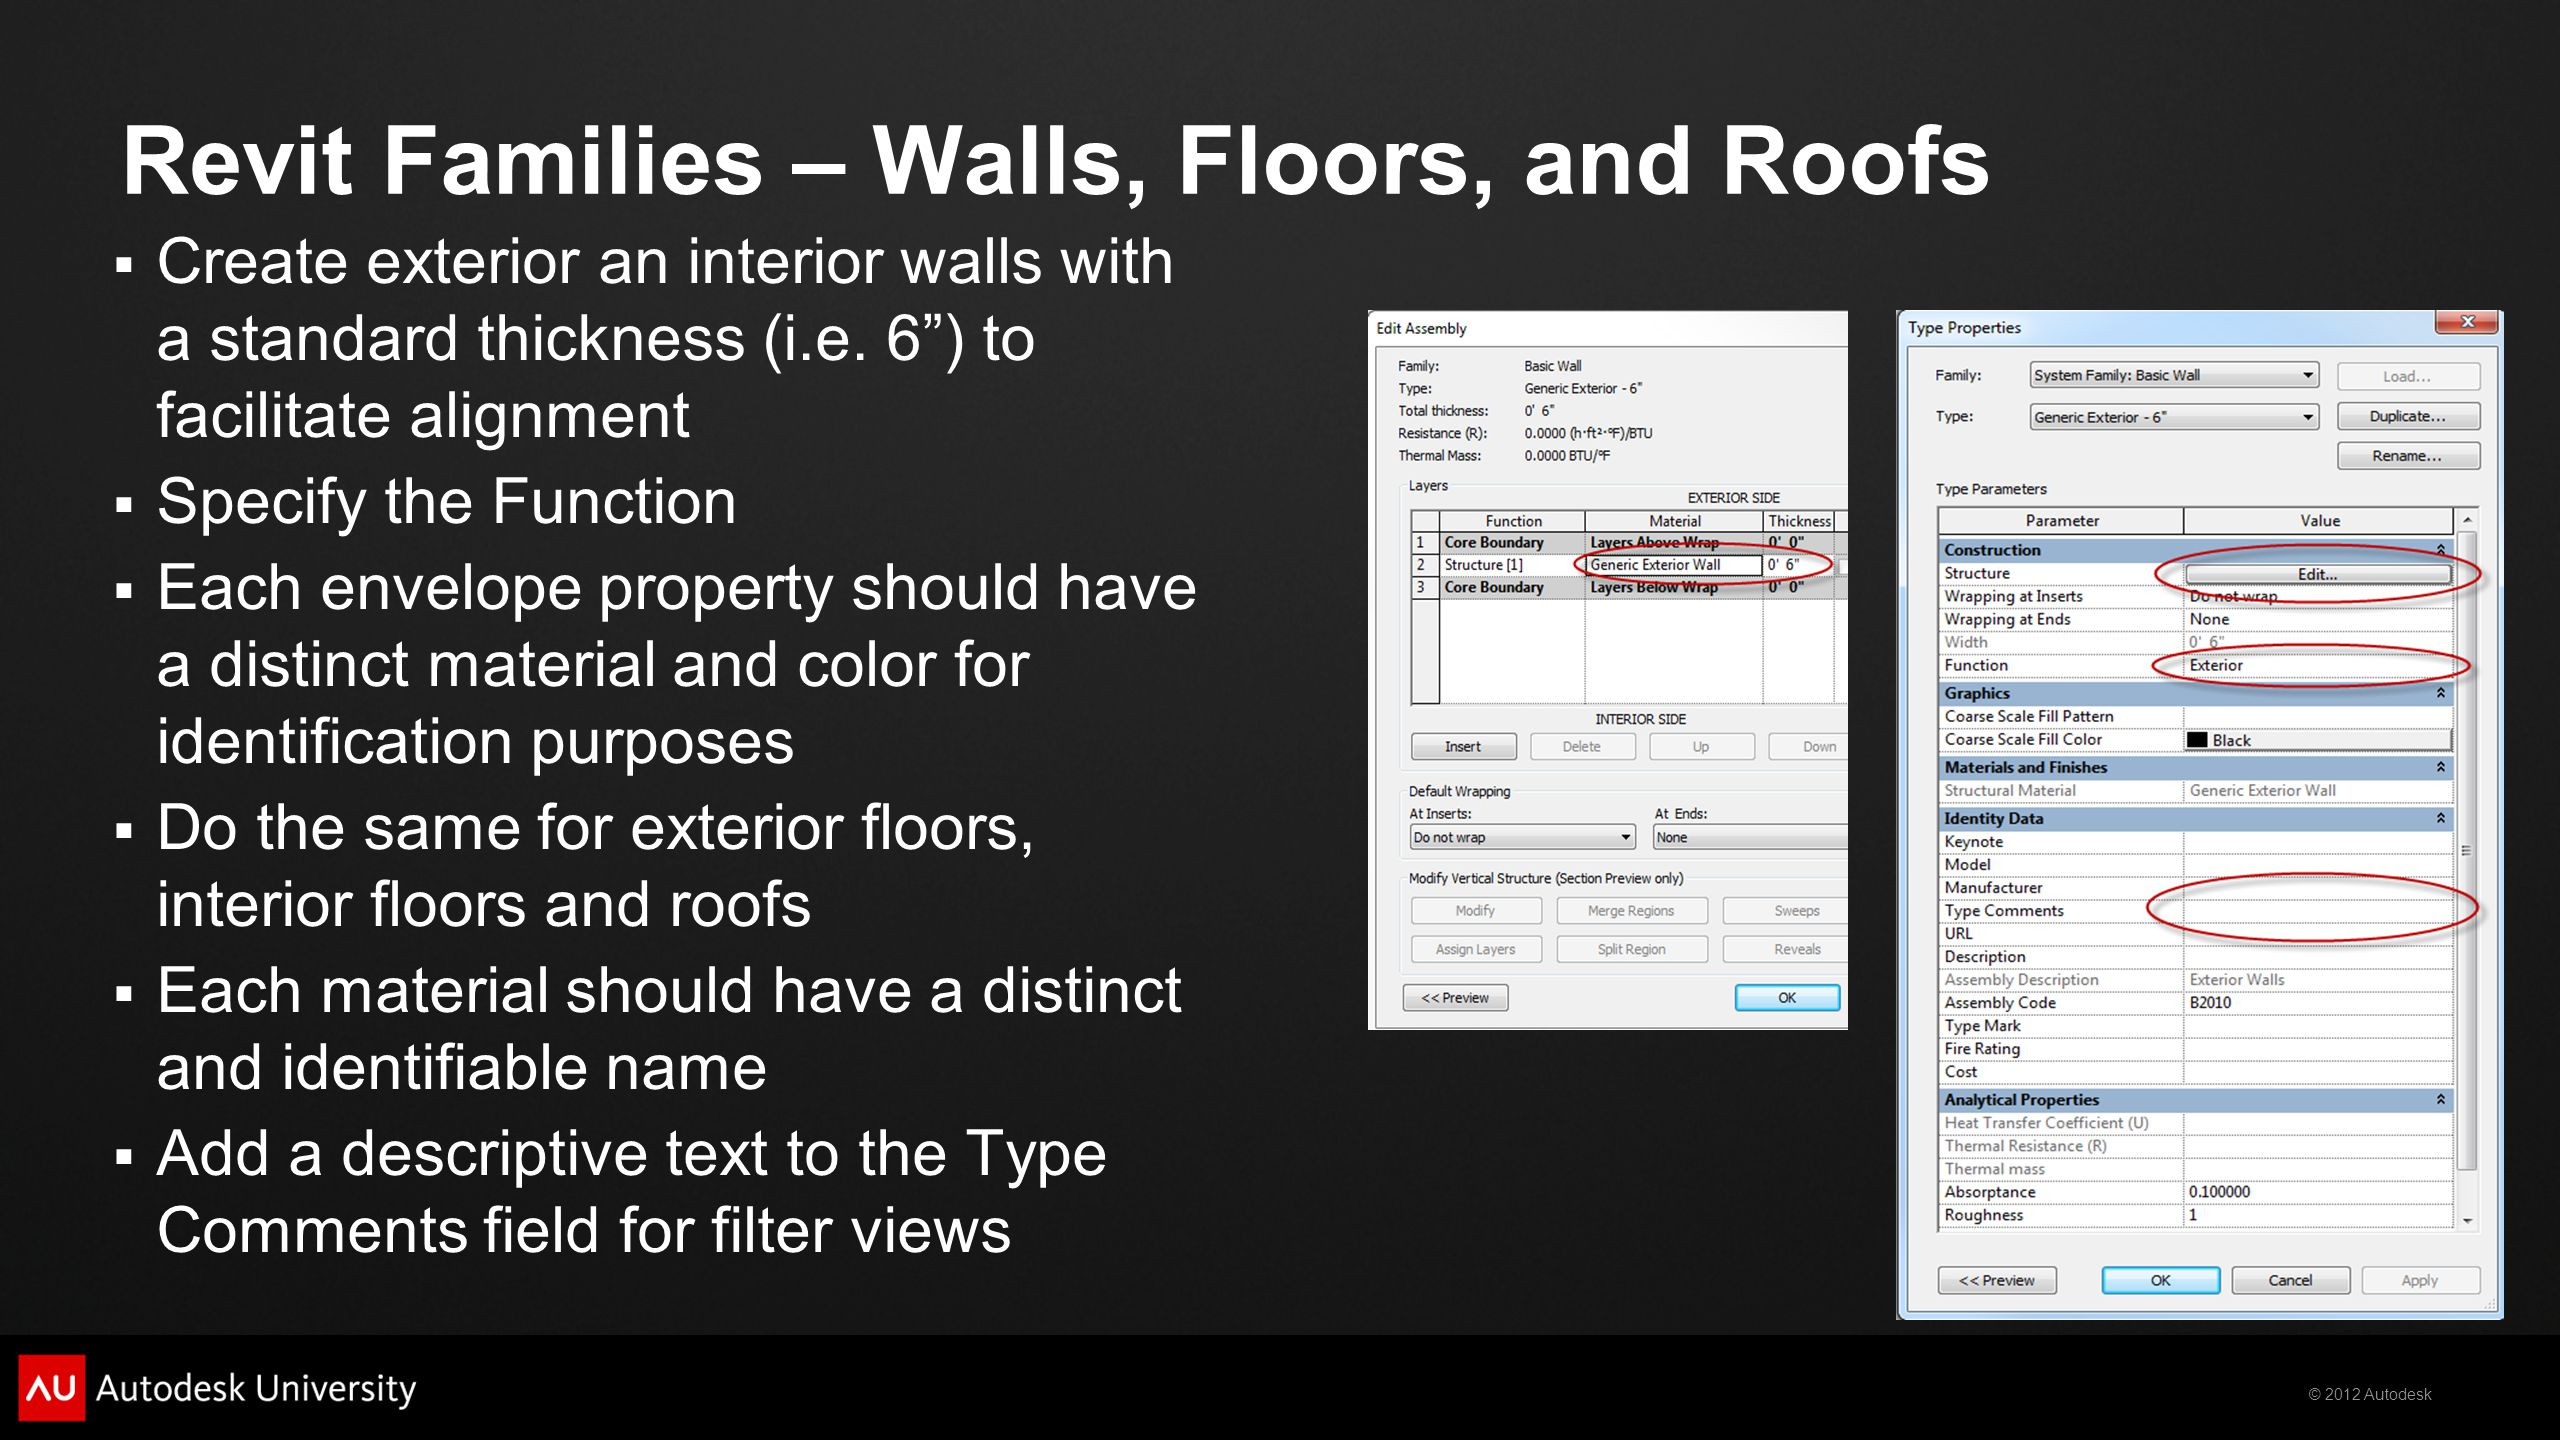 Revit Families – Walls, Floors, and Roofs